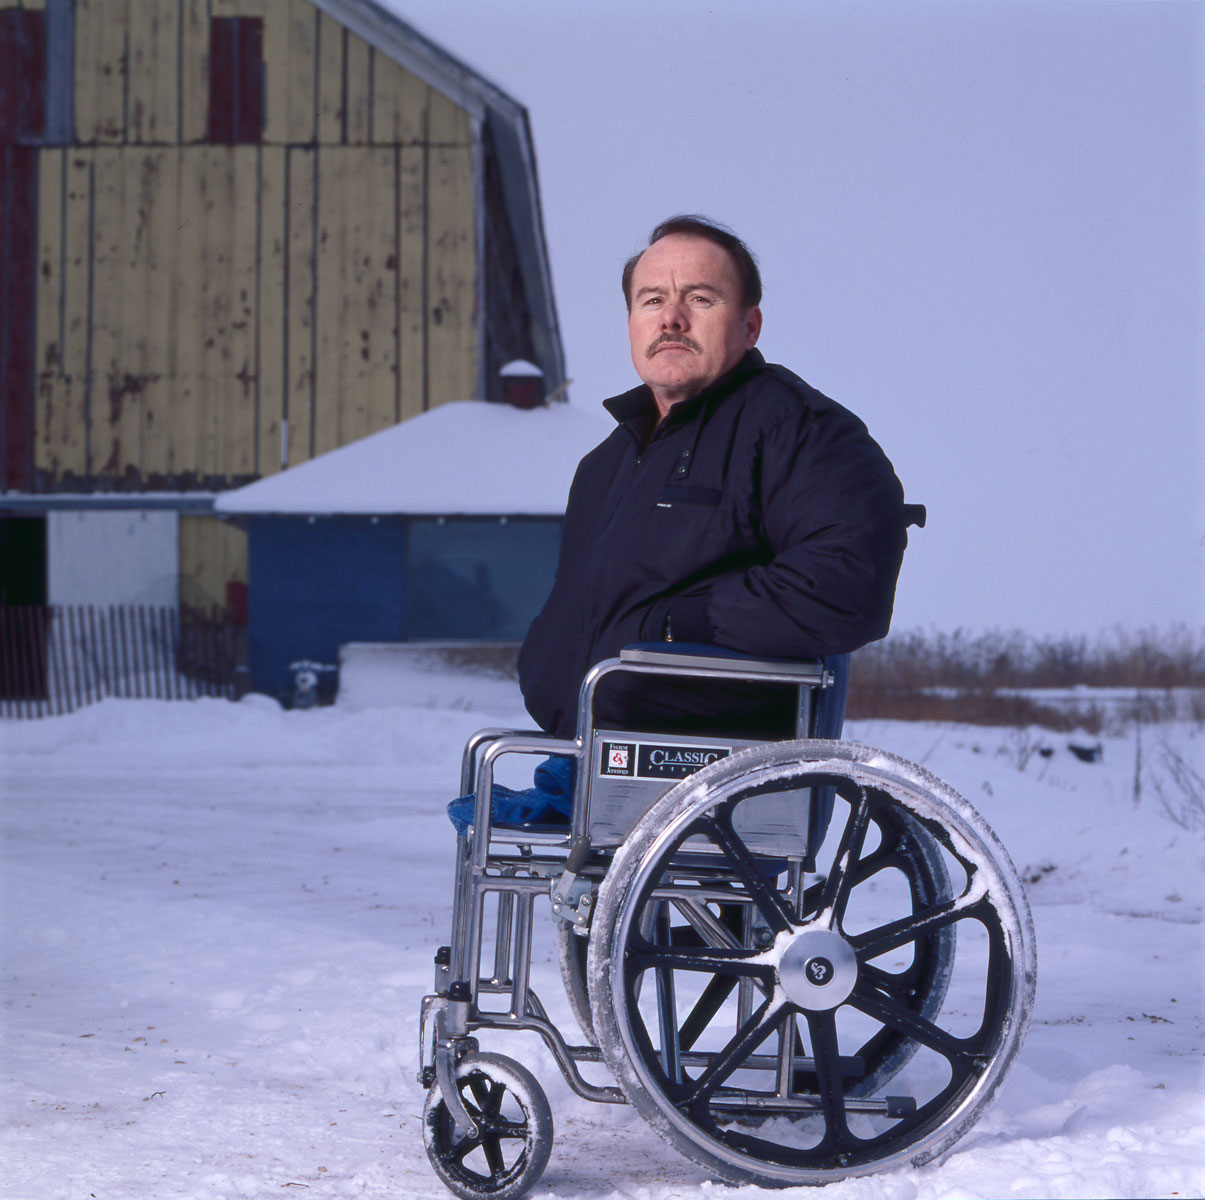 Man in wheelchair sitting in front of snowy barn.